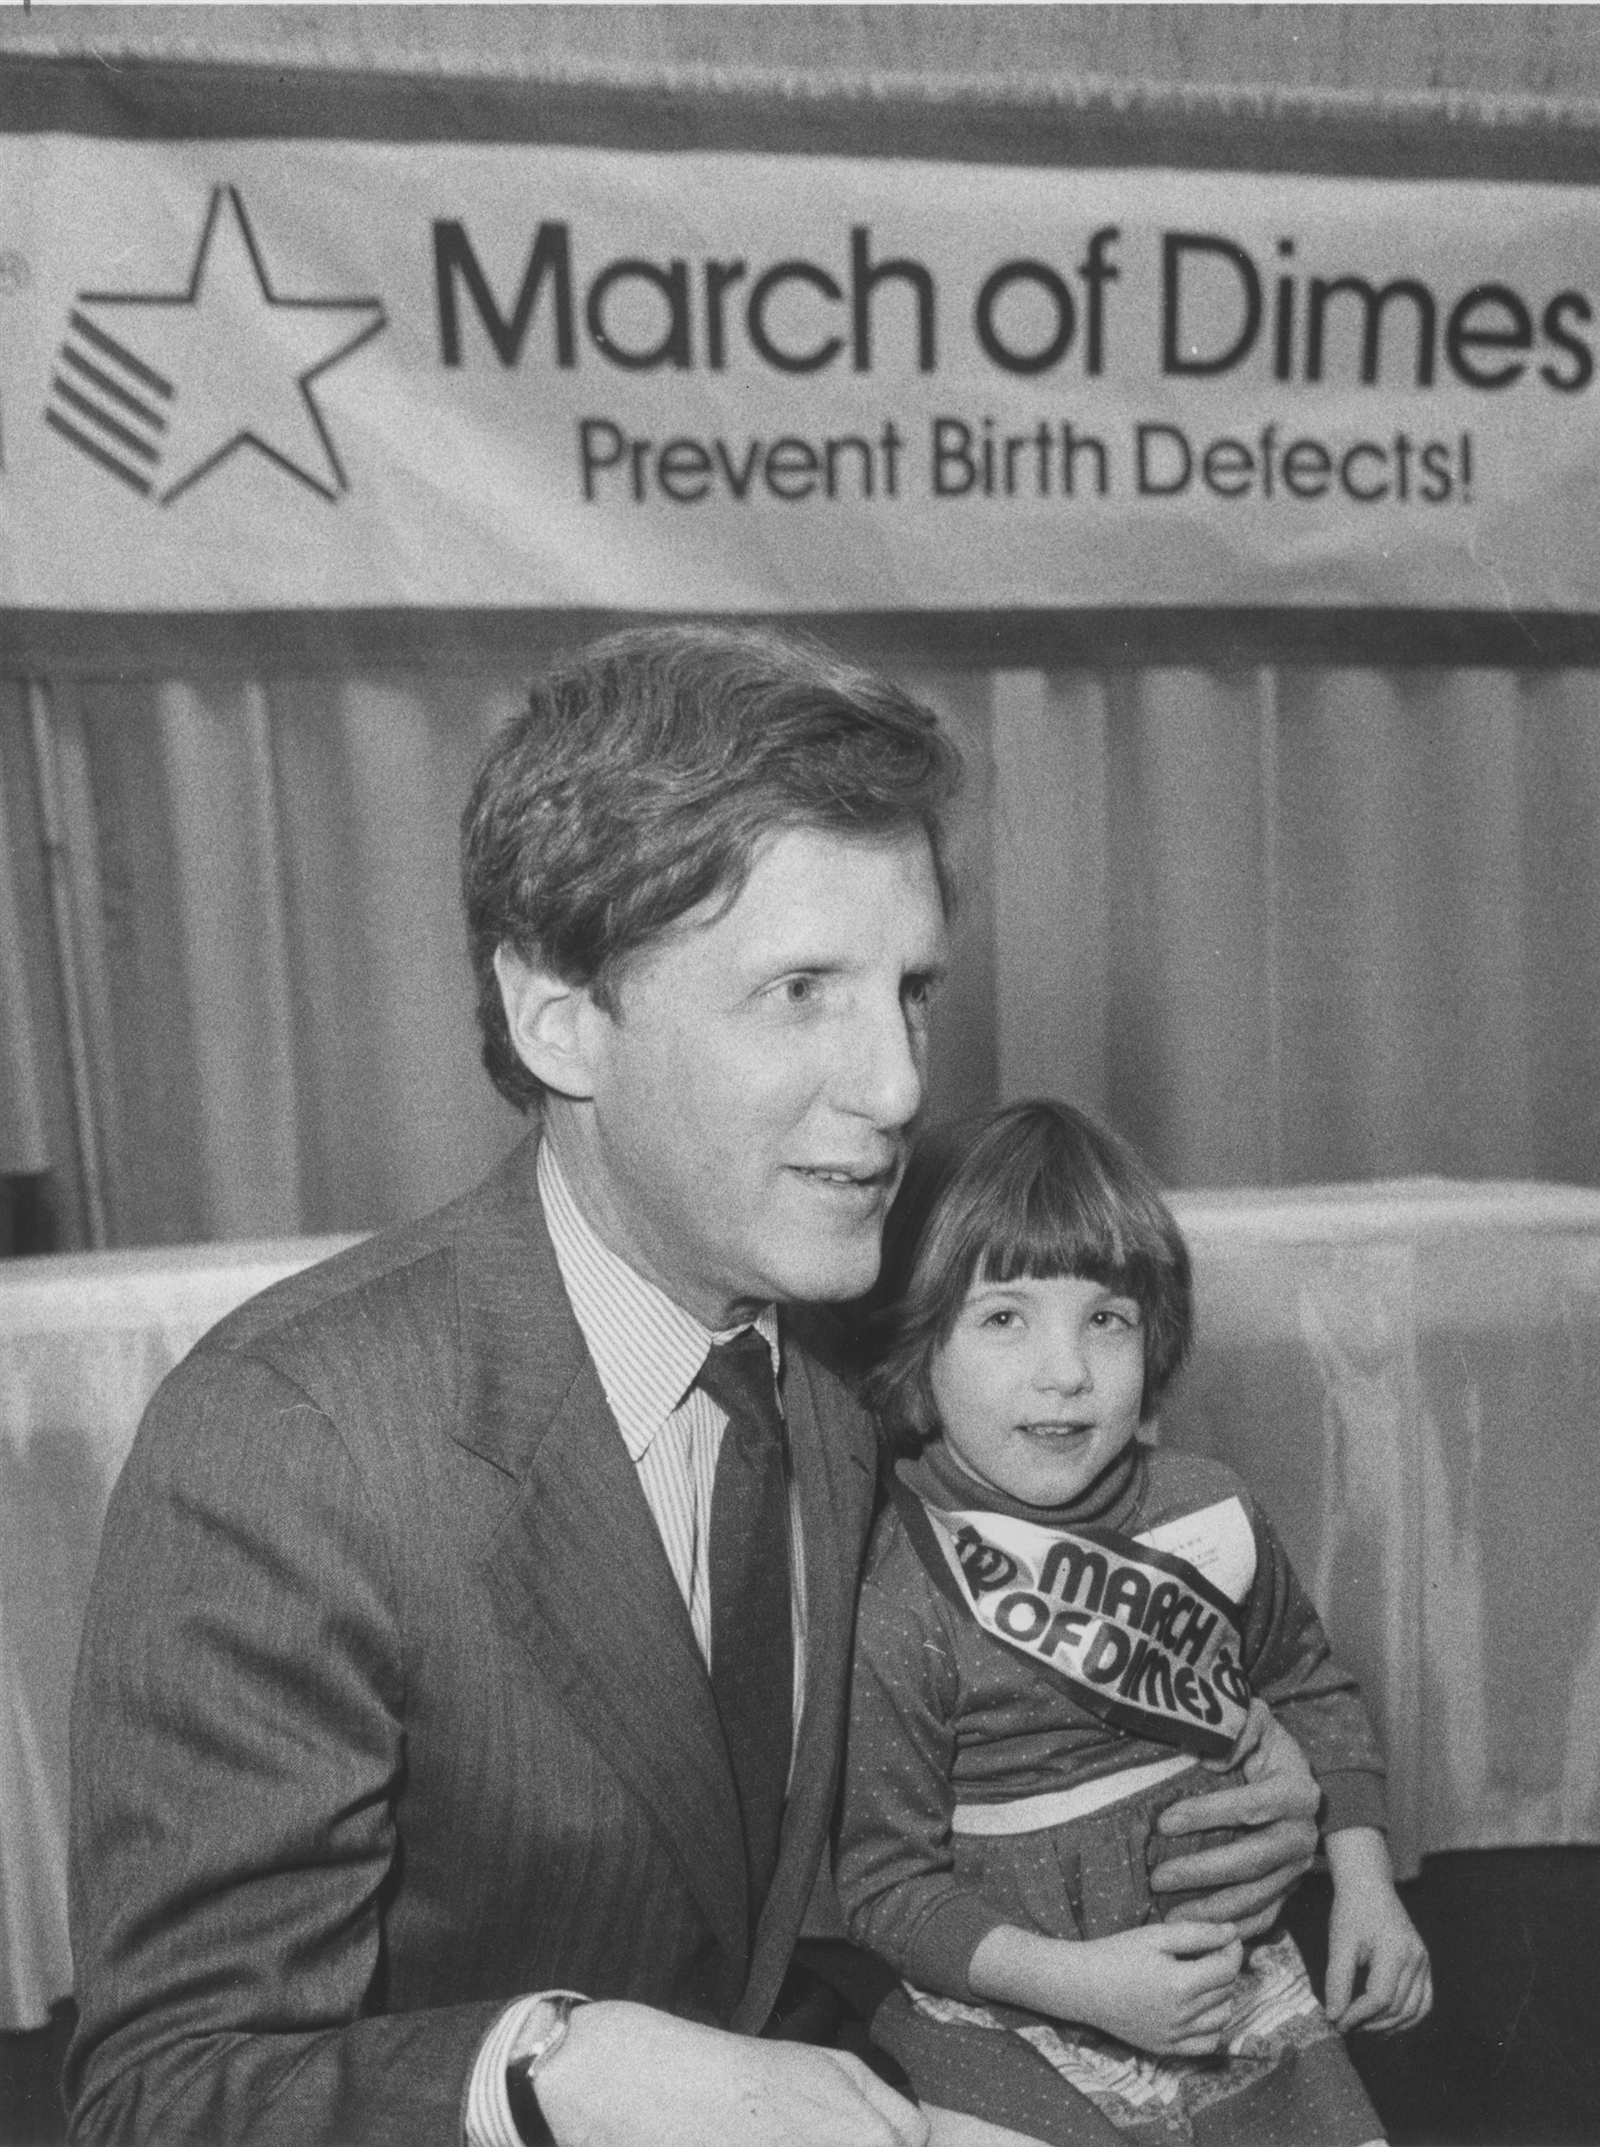 Robert Wilmers, March of Dimes honorary TeamWalk chairman, and Sara McBride, 4, of Chaffee, the group's Western New York poster child, unveil plans to raise $250,000 during the local TeamWalk on Feb. 19, 1986.